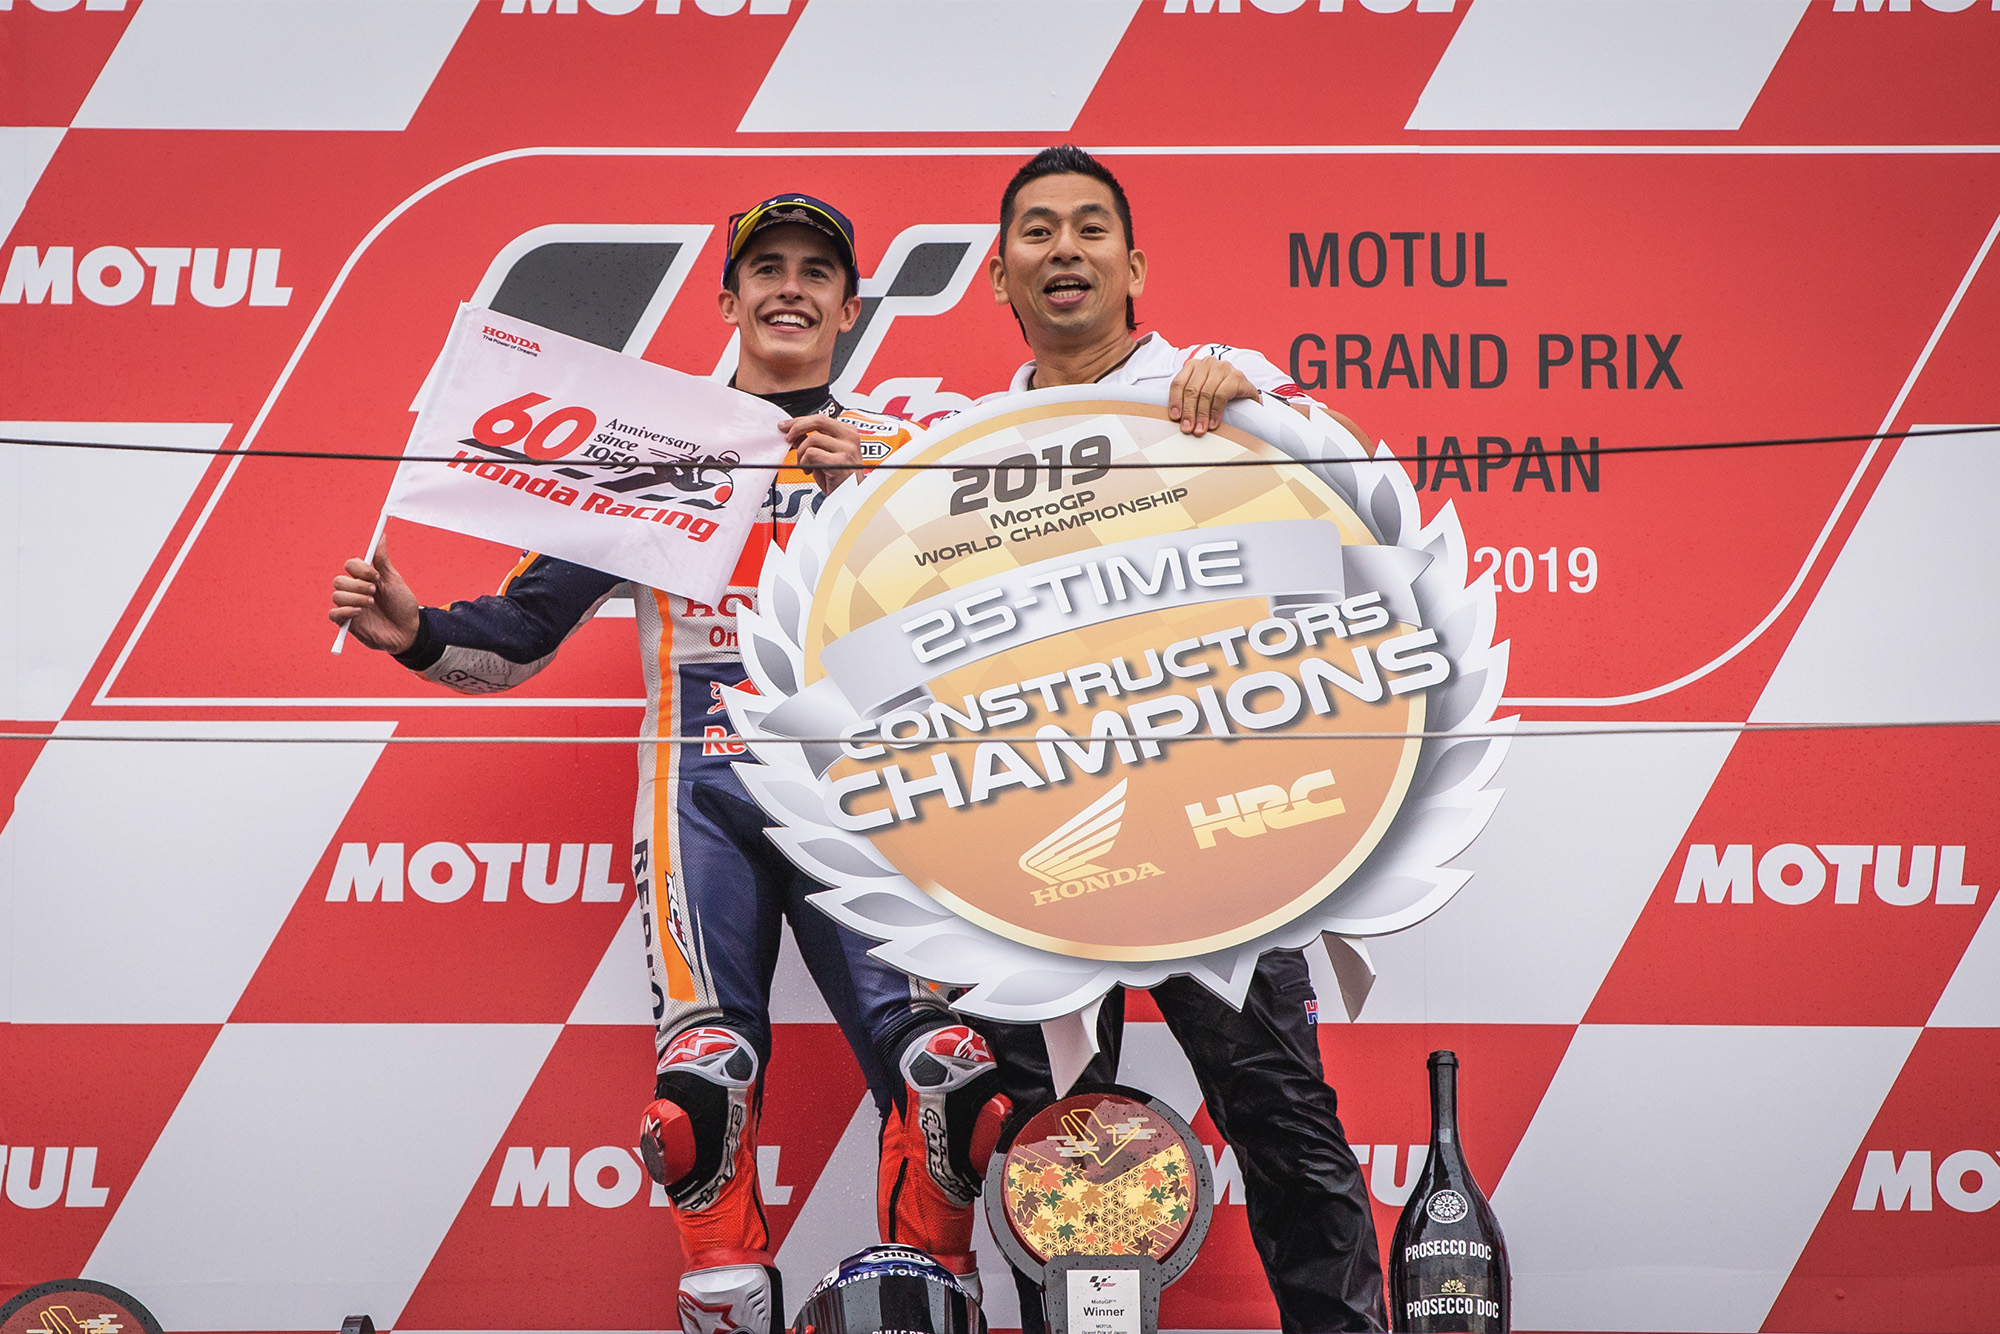 Marc Márquez on the podium at the Japanese MotoGP Grand Prix